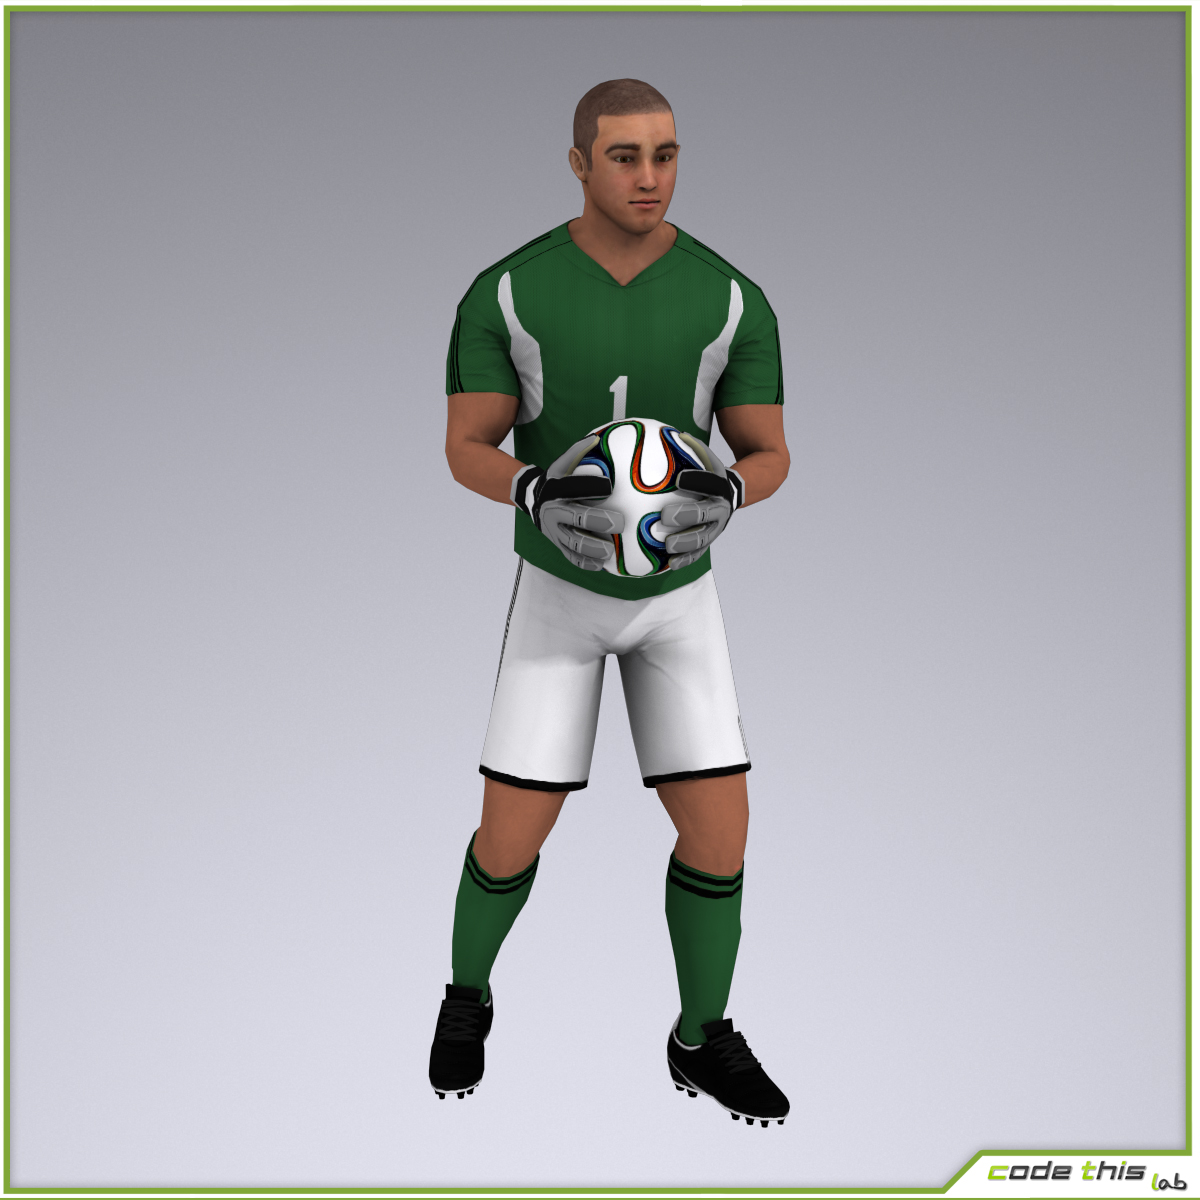 White Soccer Goalkeeper 9609 tris 3D model